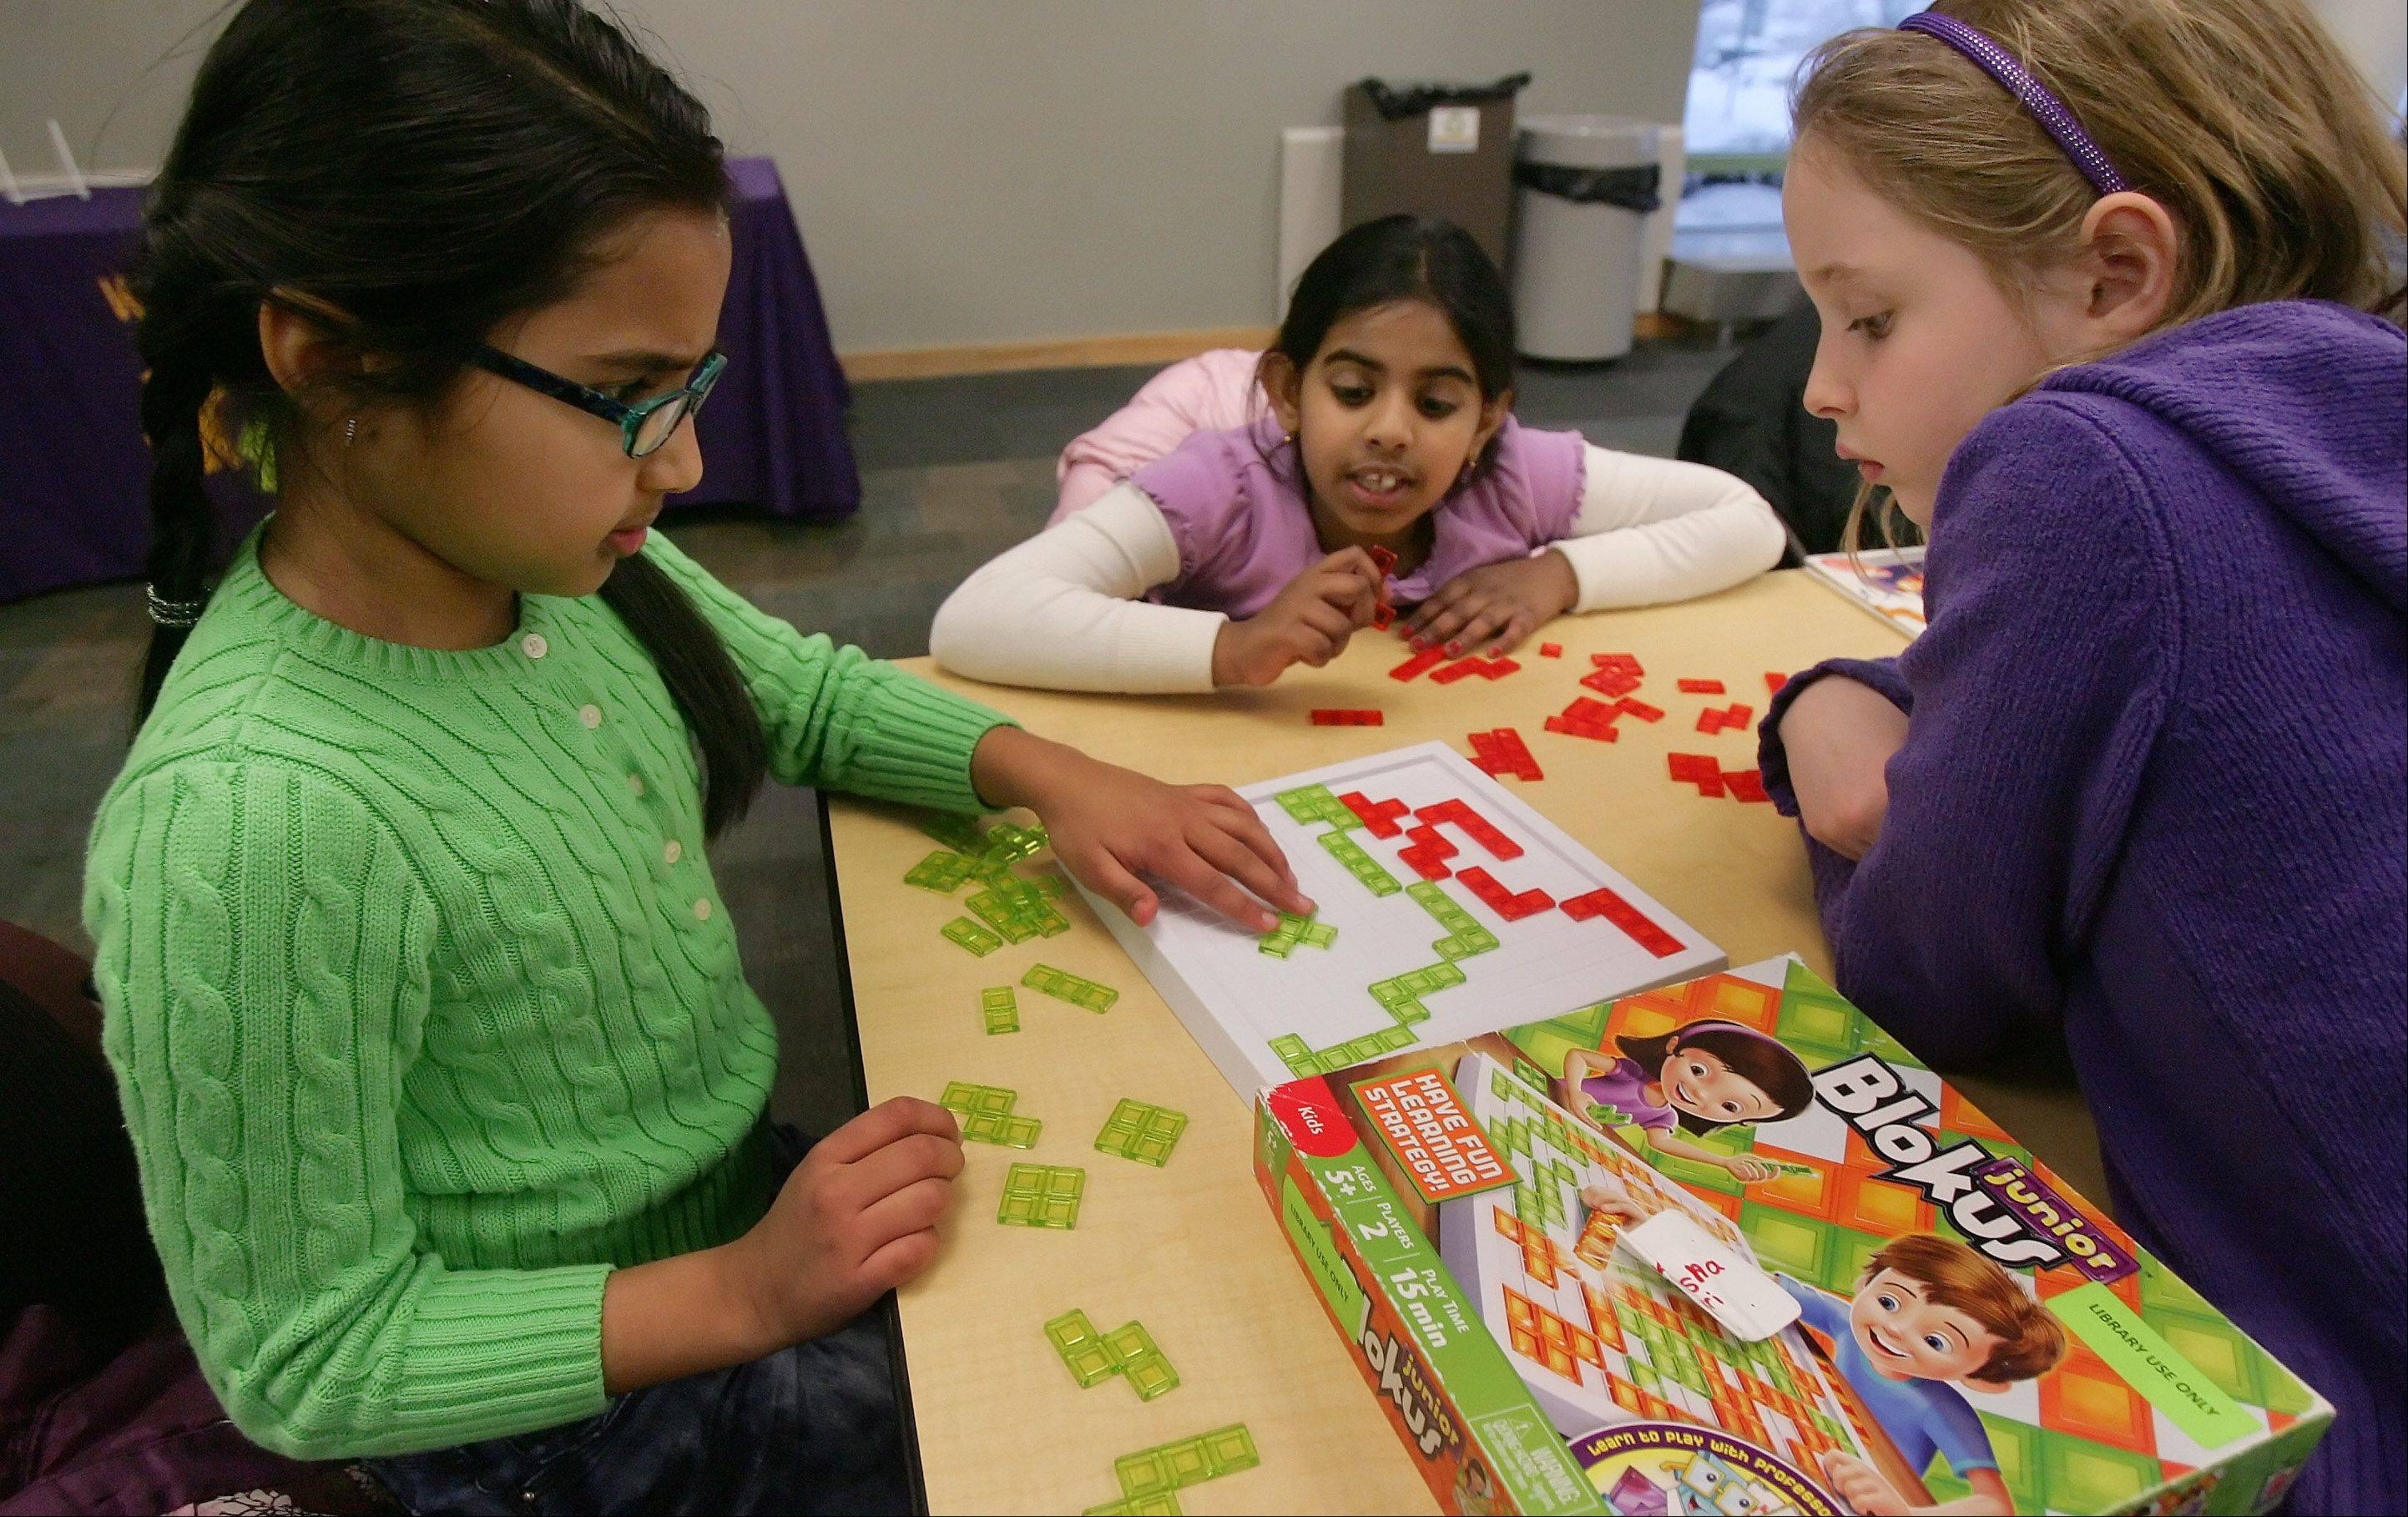 Meha Krishna, 8, left, Sruja Konada, 8, and Emery Etzel, 9, play Blokus during a snow day Thursday at Vernon Area Public Library in Lincolnshire.